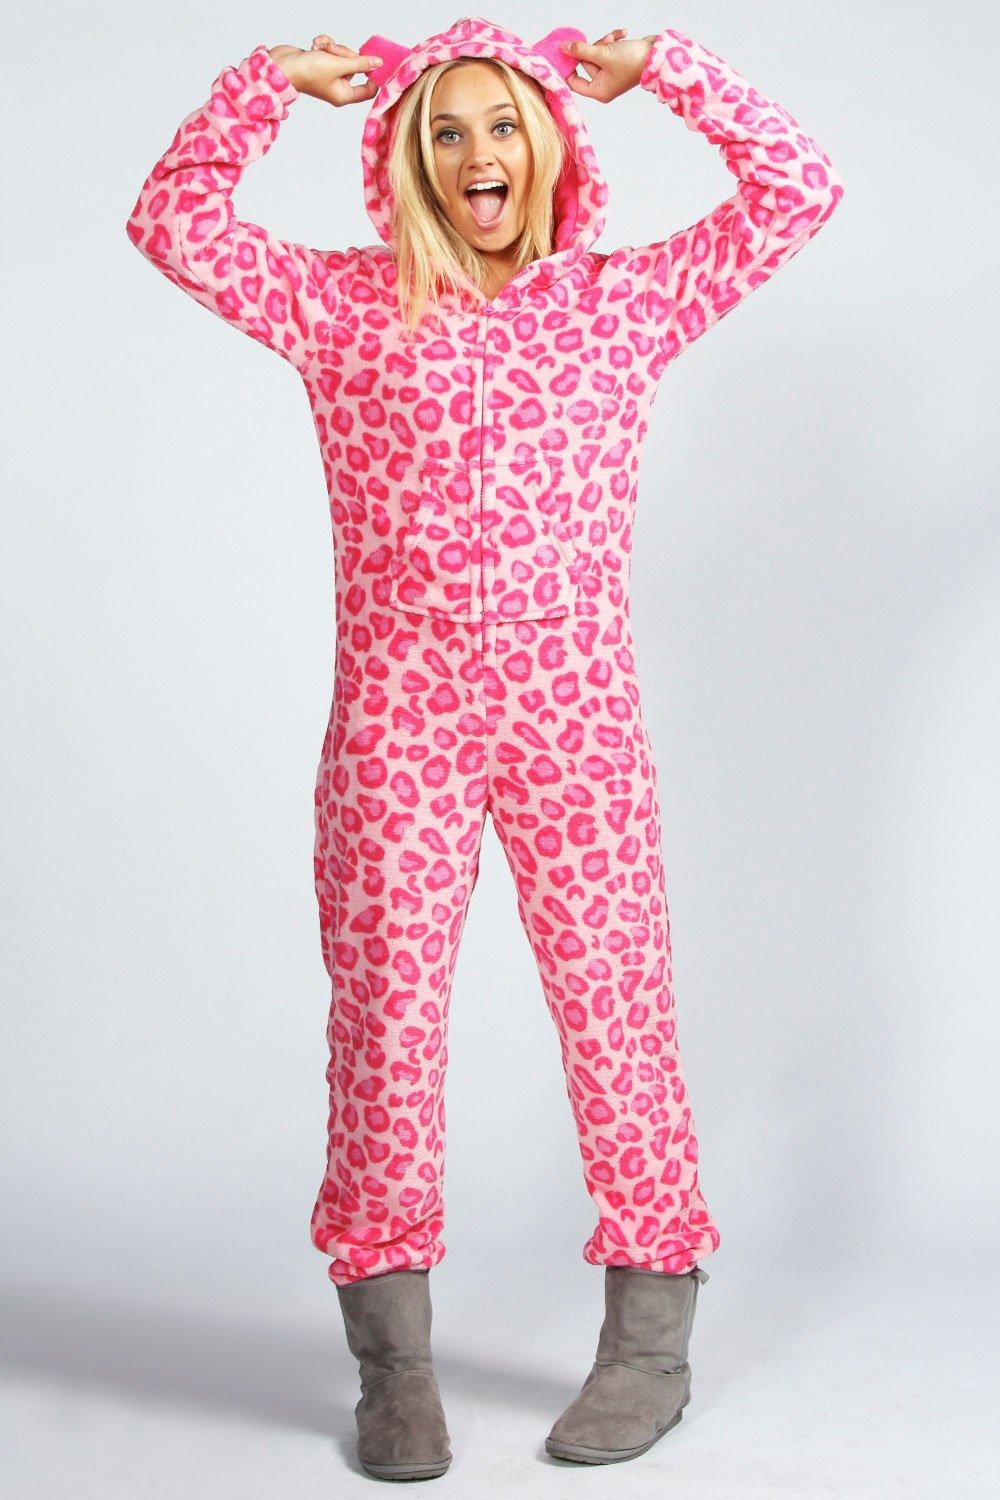 195d51d8e4 Lara Leopard Print Hooded Onesie. Hover to zoom